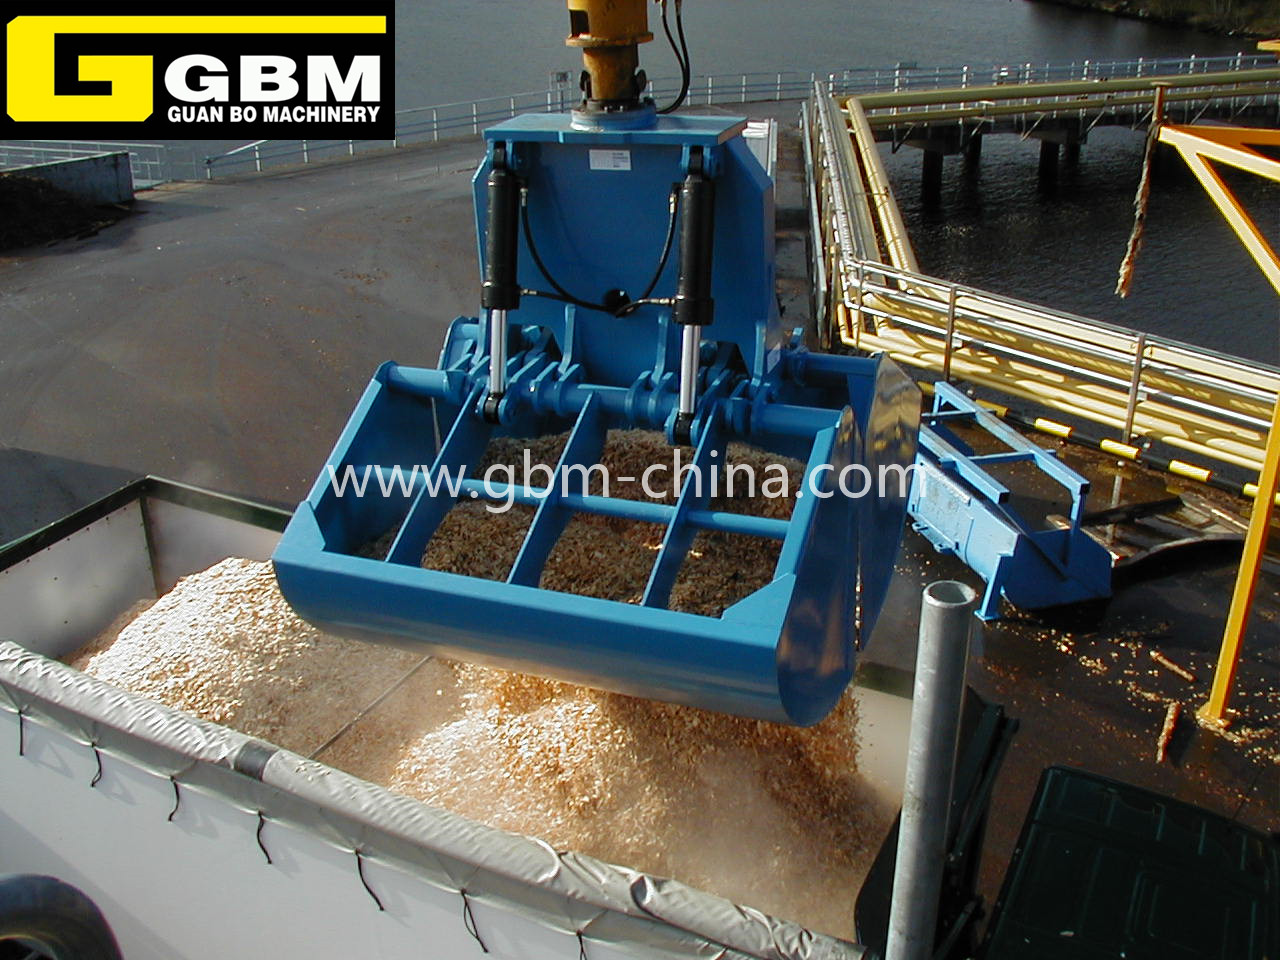 Excavator supporting hydraulic clamshell grab